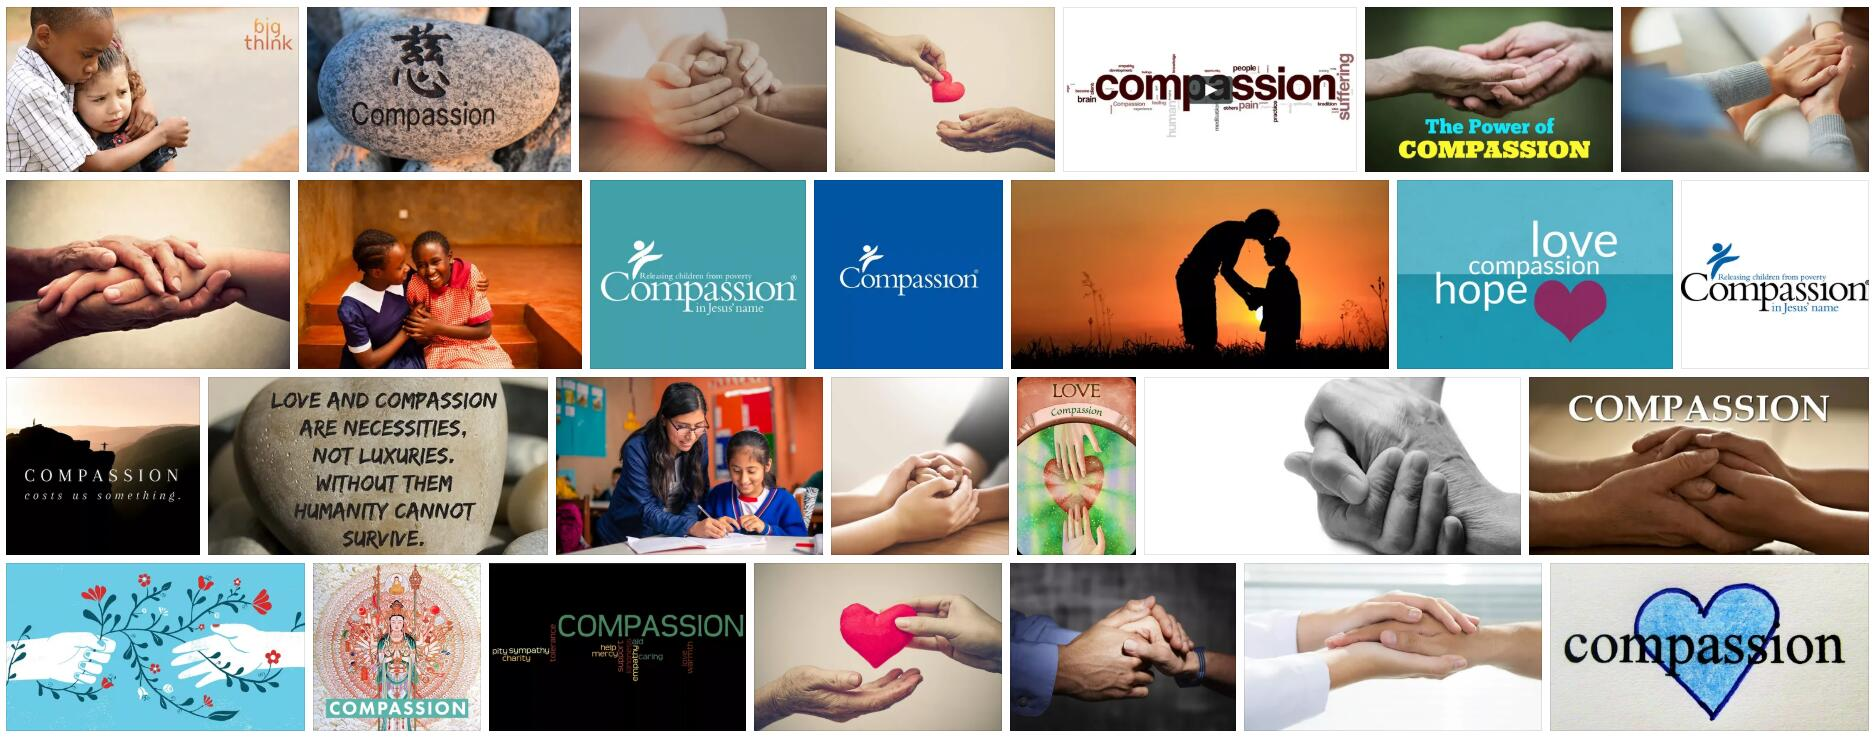 Meaning of Compassion in English